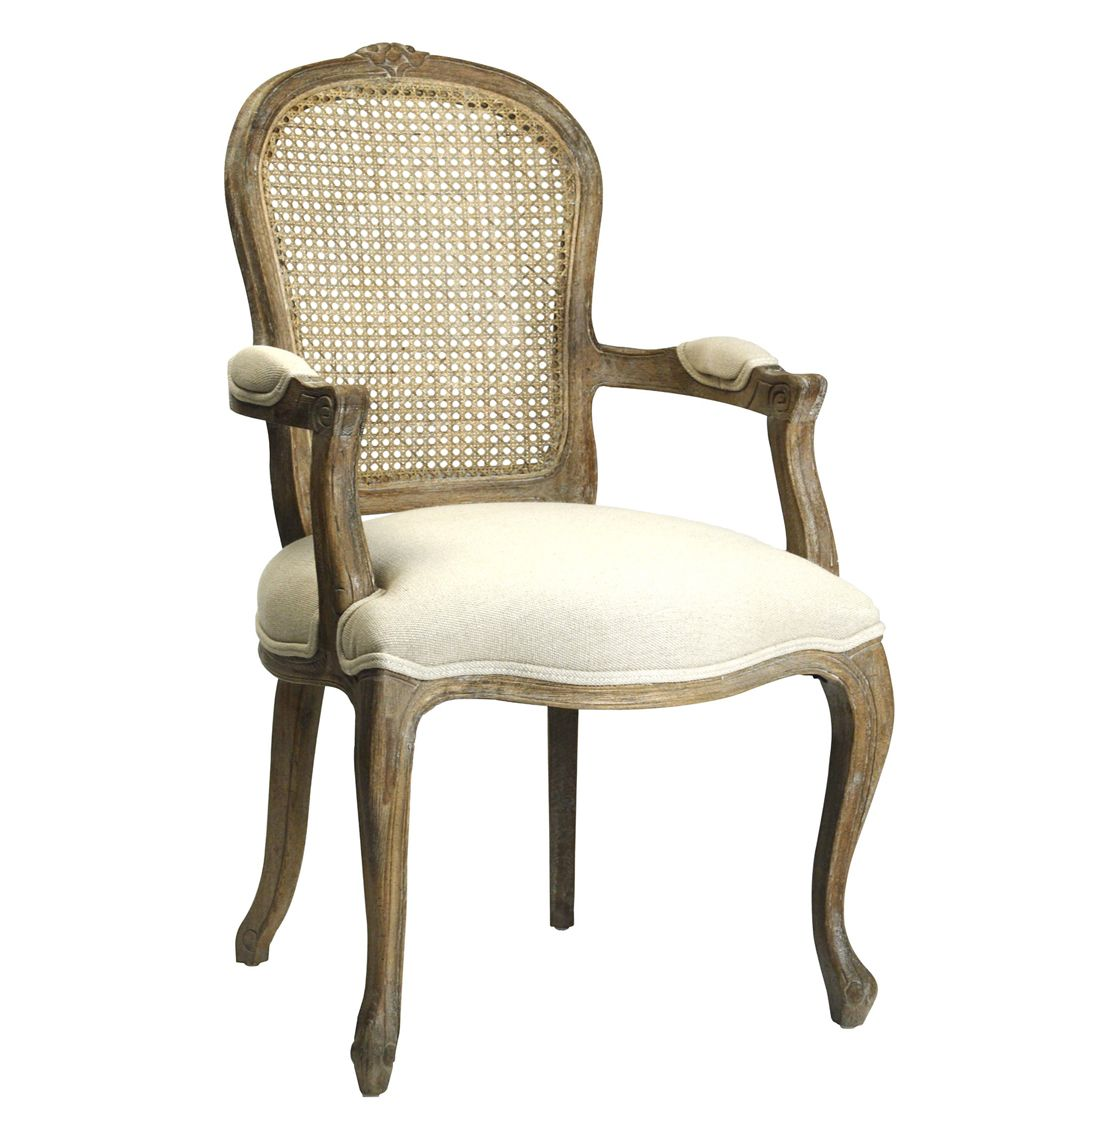 Louis cane back dining chair set of 2 ballard designs - Caned Back Dining Chairs Lyon French Country Cane Back Linen Dining Arm Chair